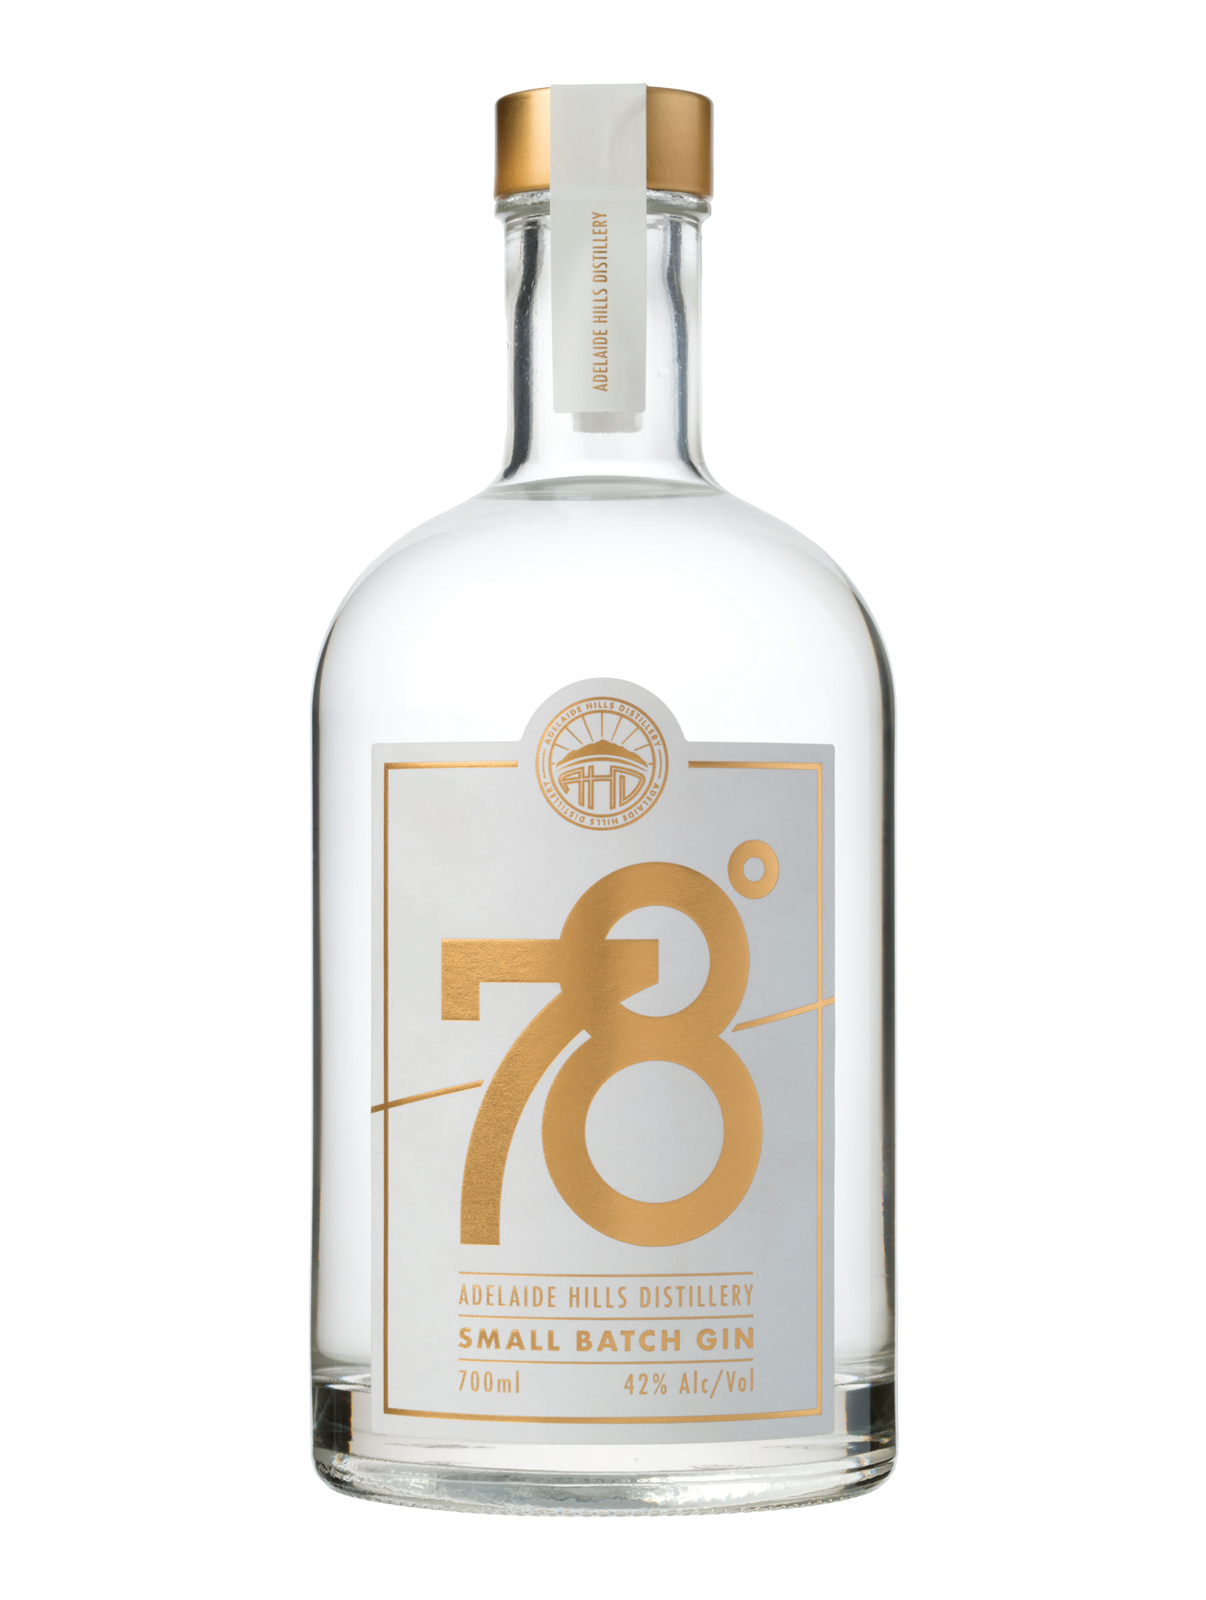 Adelaide Hills Distillery 78° Small Batch Gin